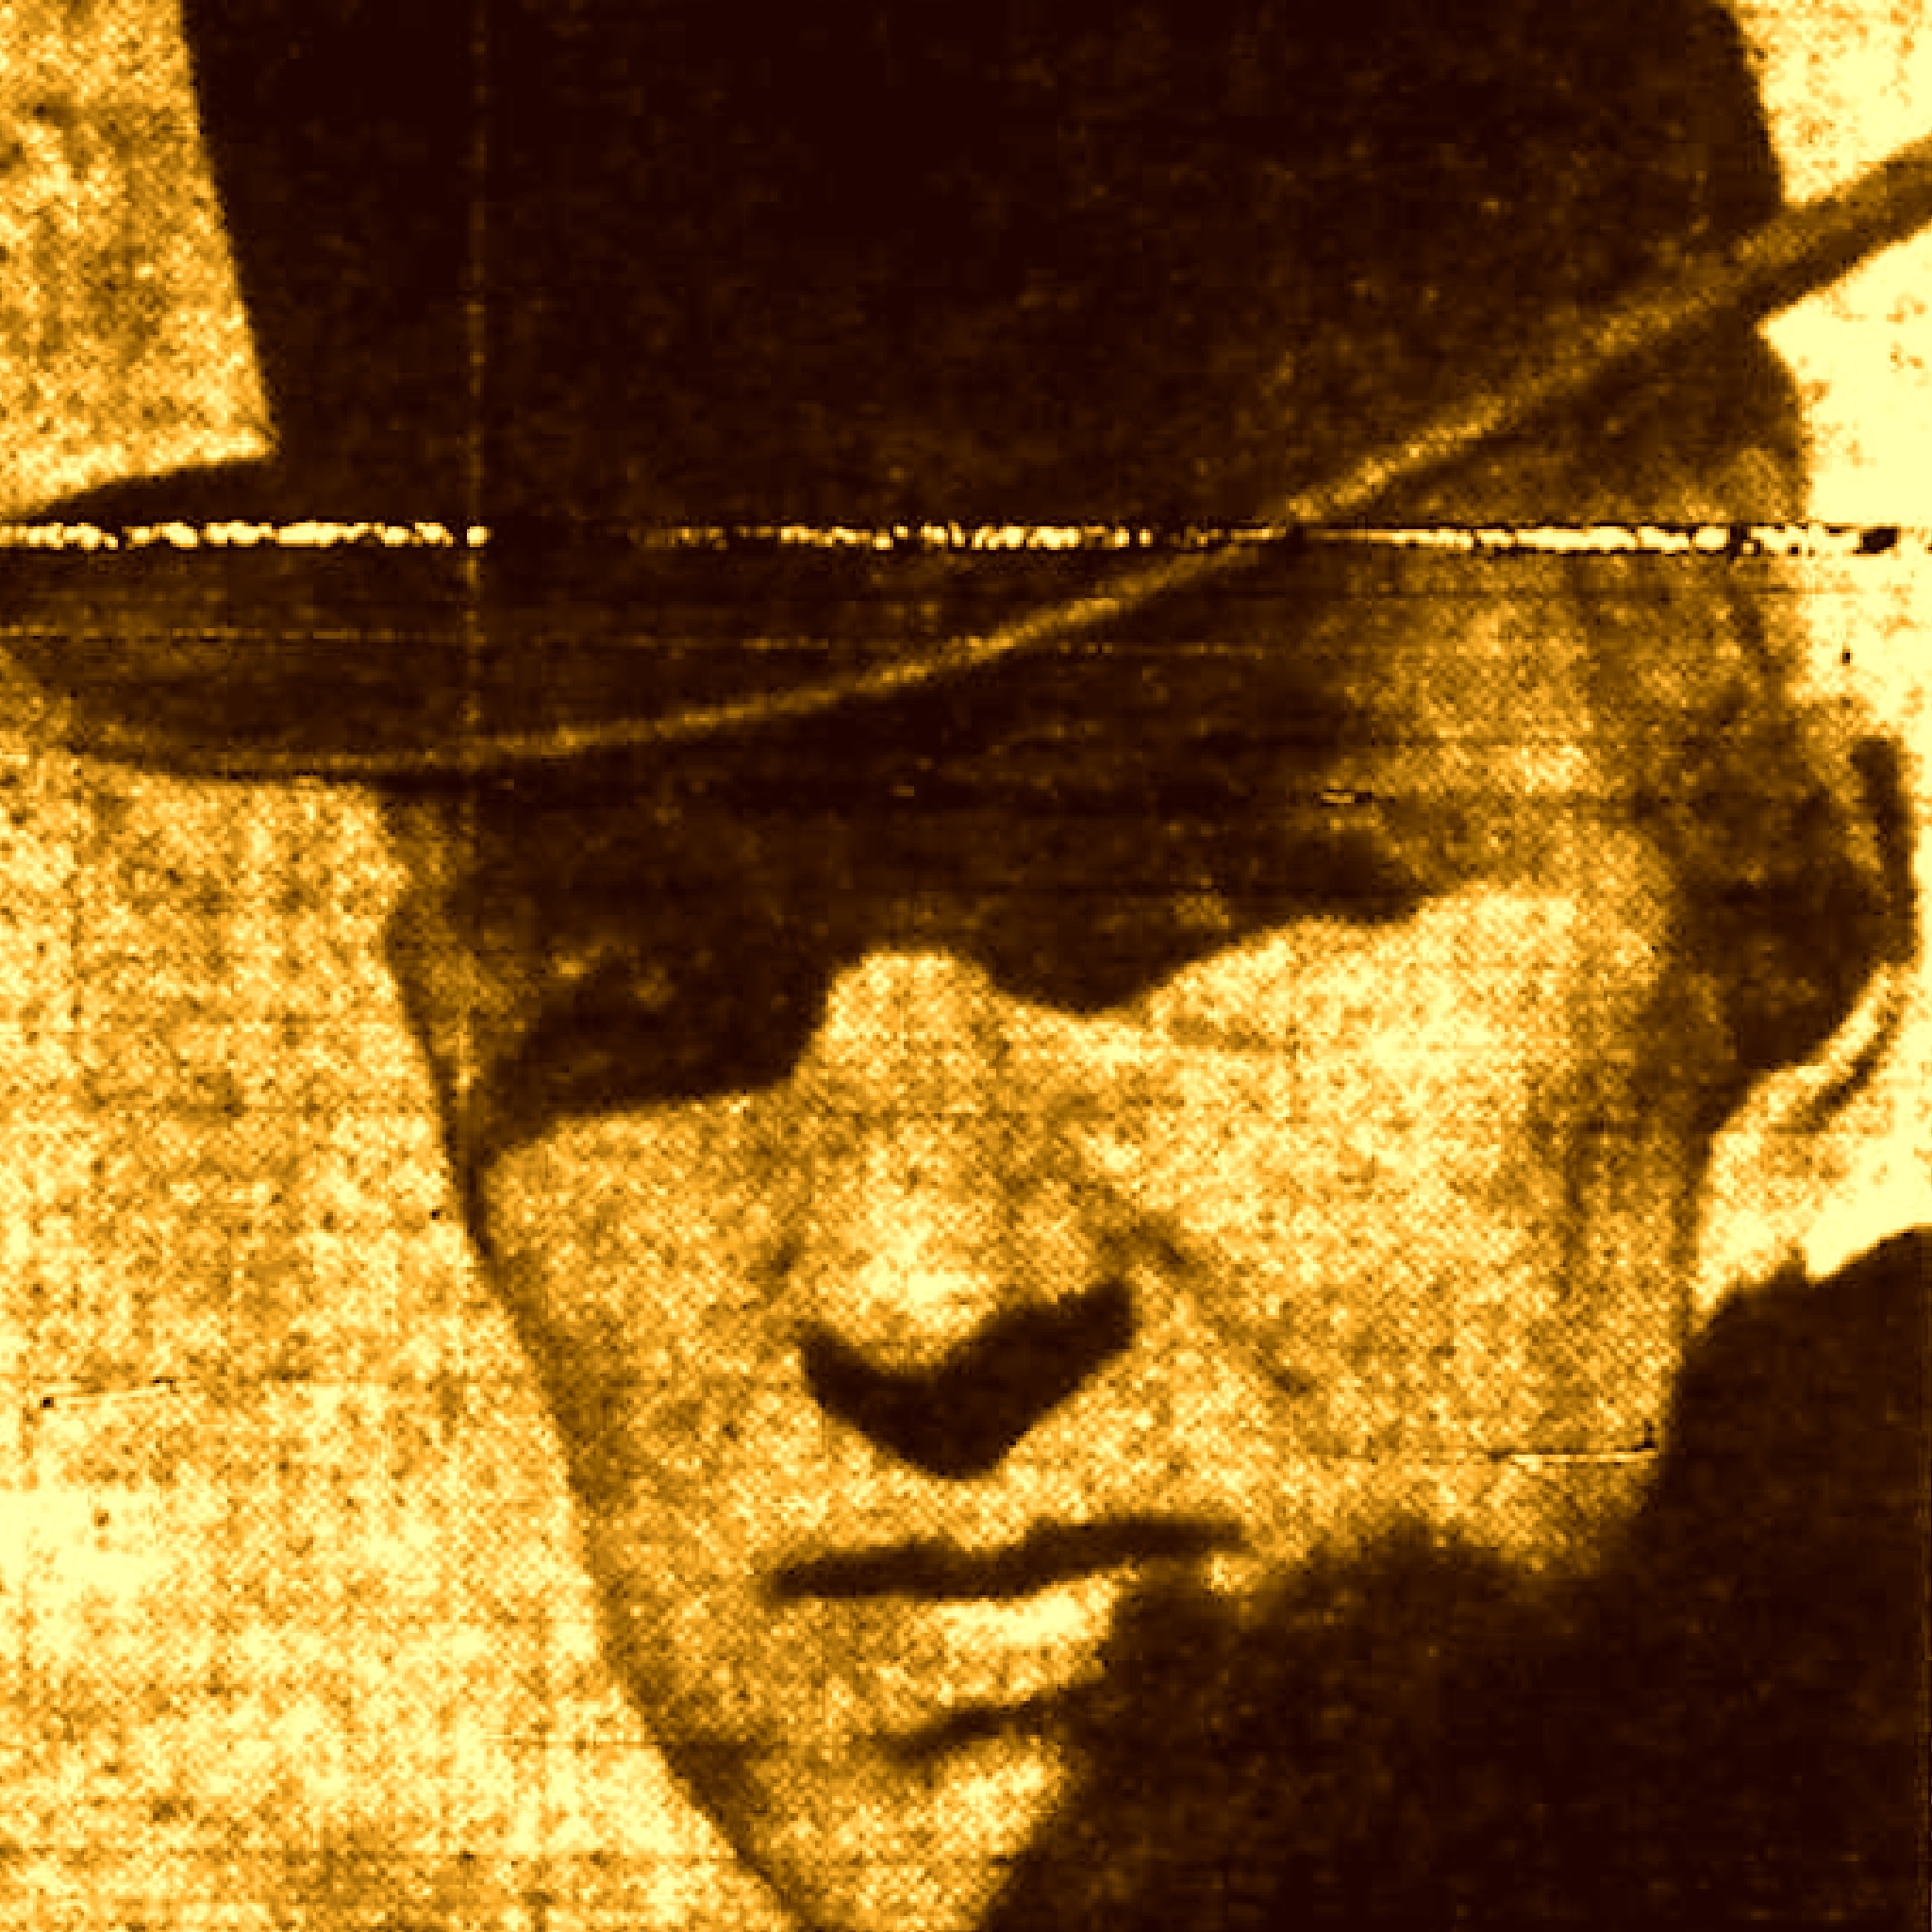 Caption: Frederick Price, convicted of the murder of Mary Fridley Price in 1916.